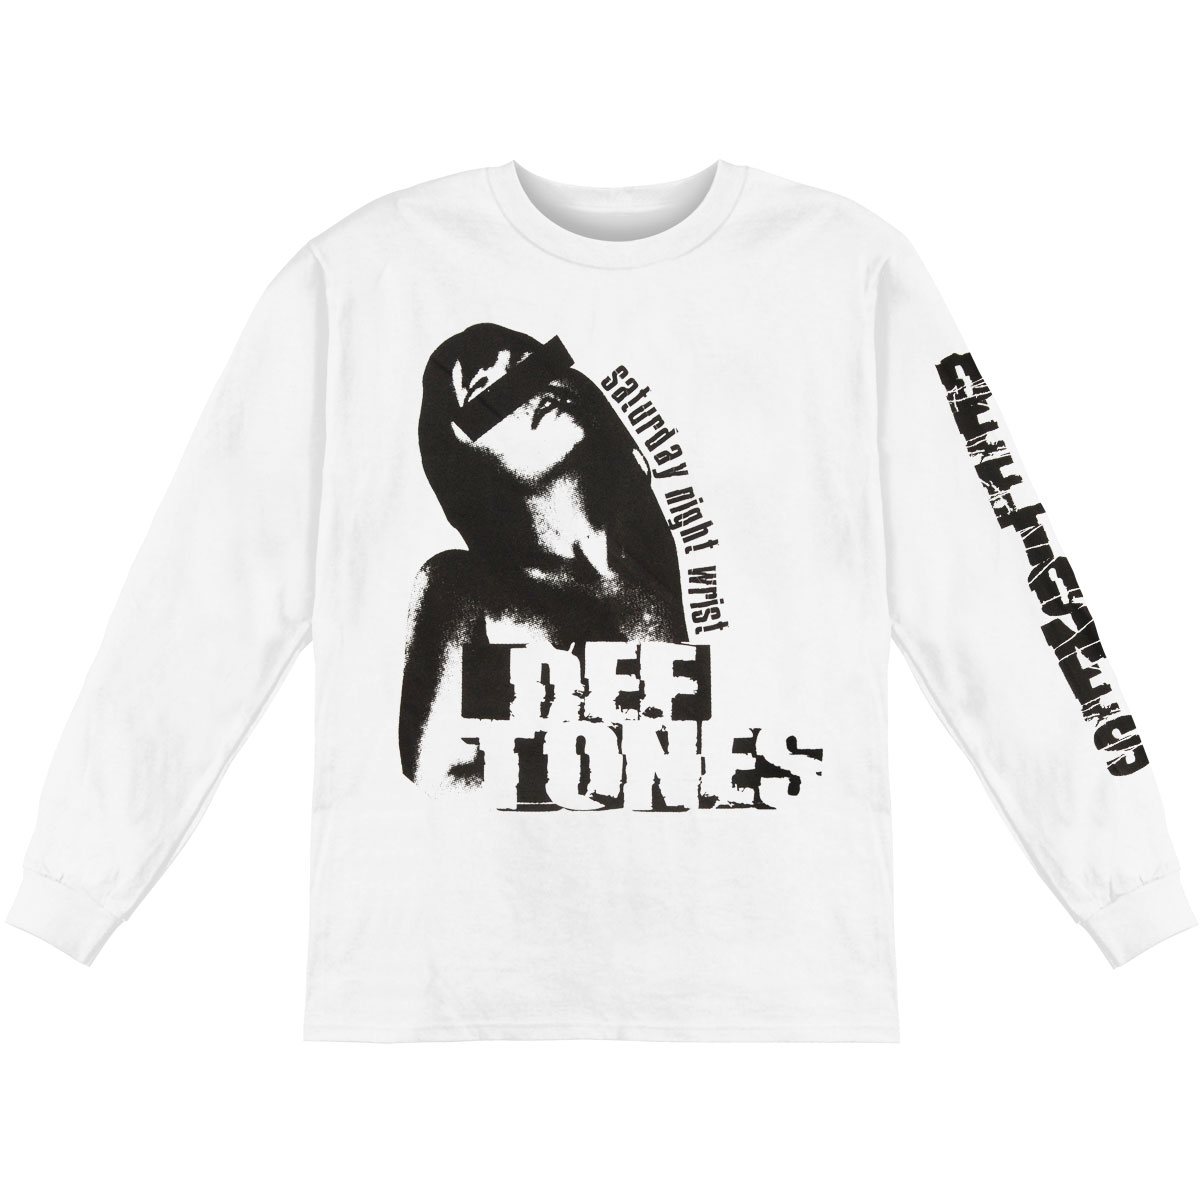 Deftones Men's  Sexploitation  Long Sleeve White